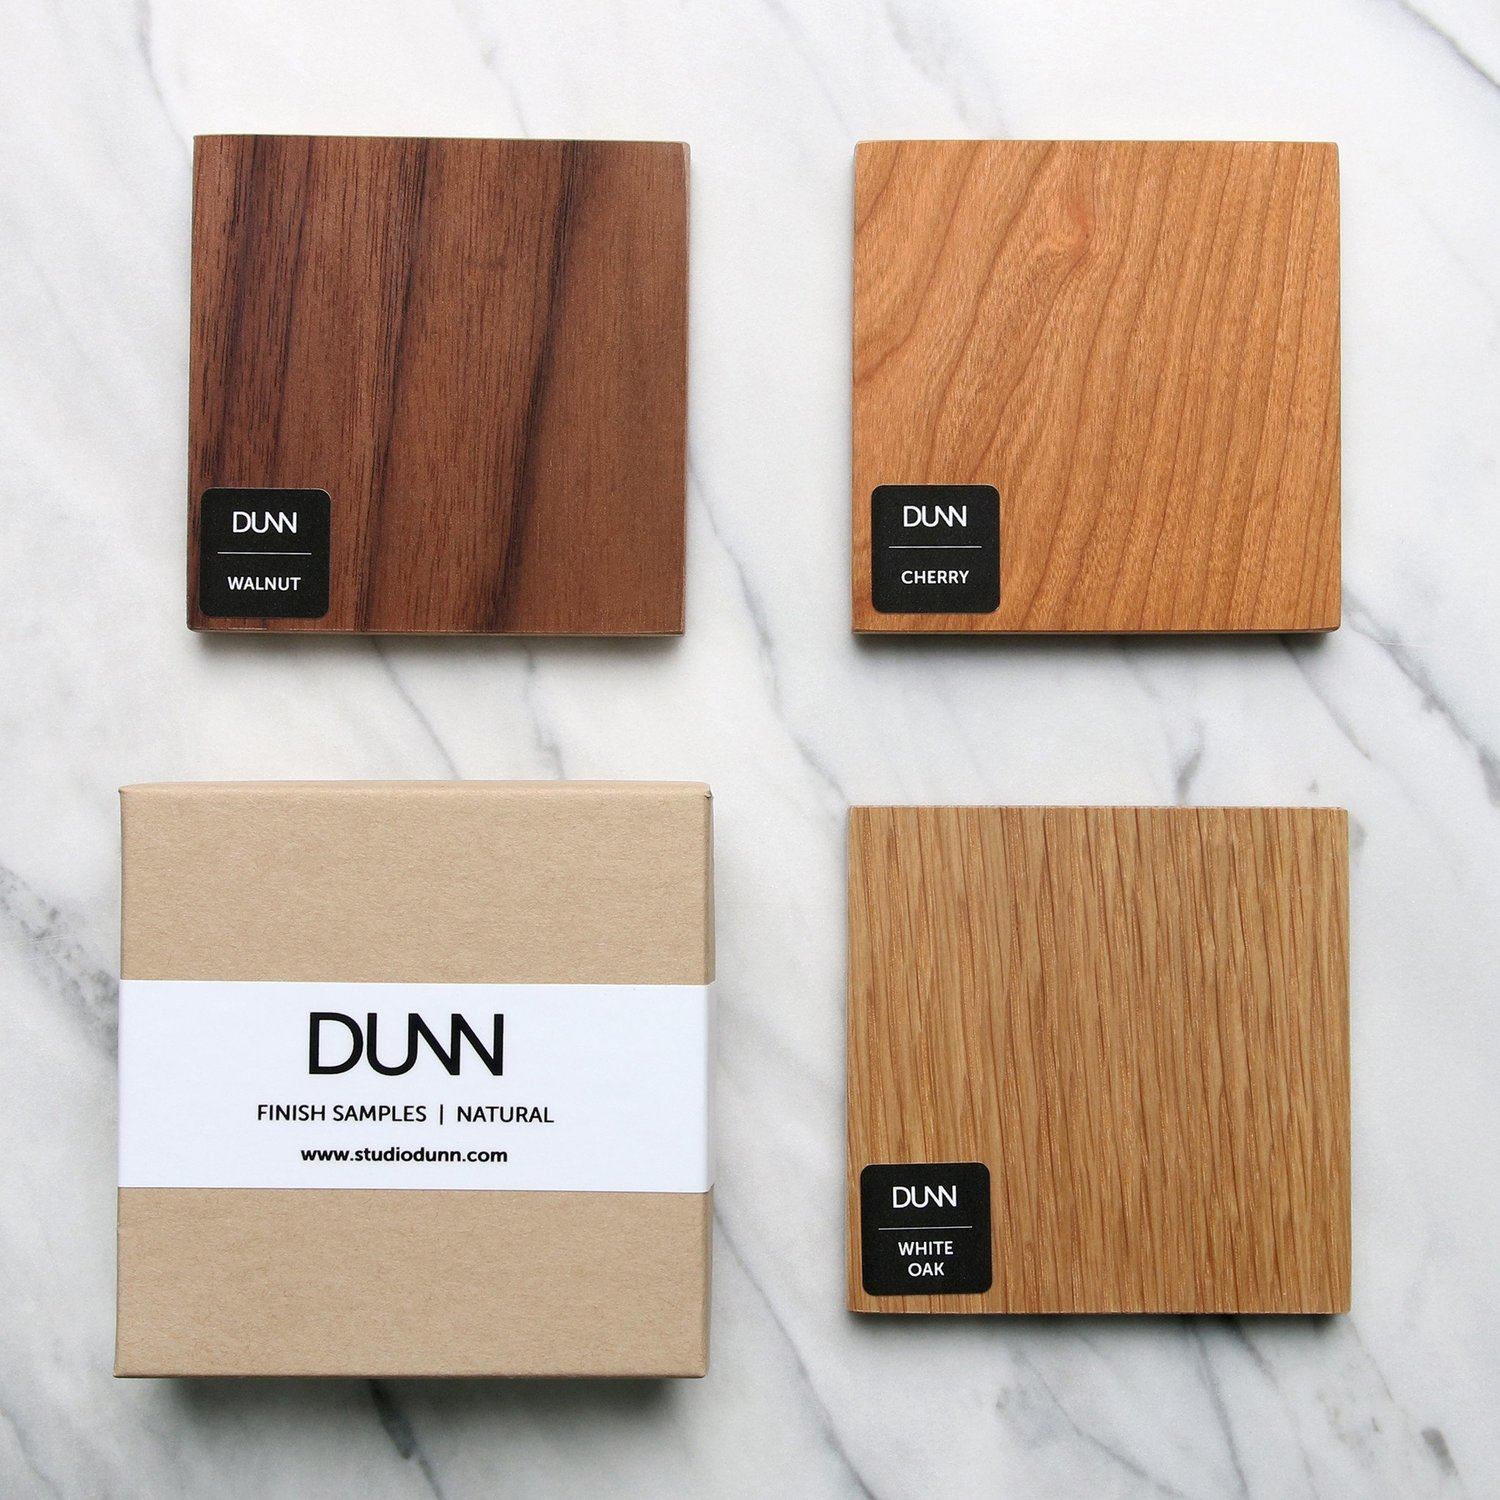 Dunn swatches 1